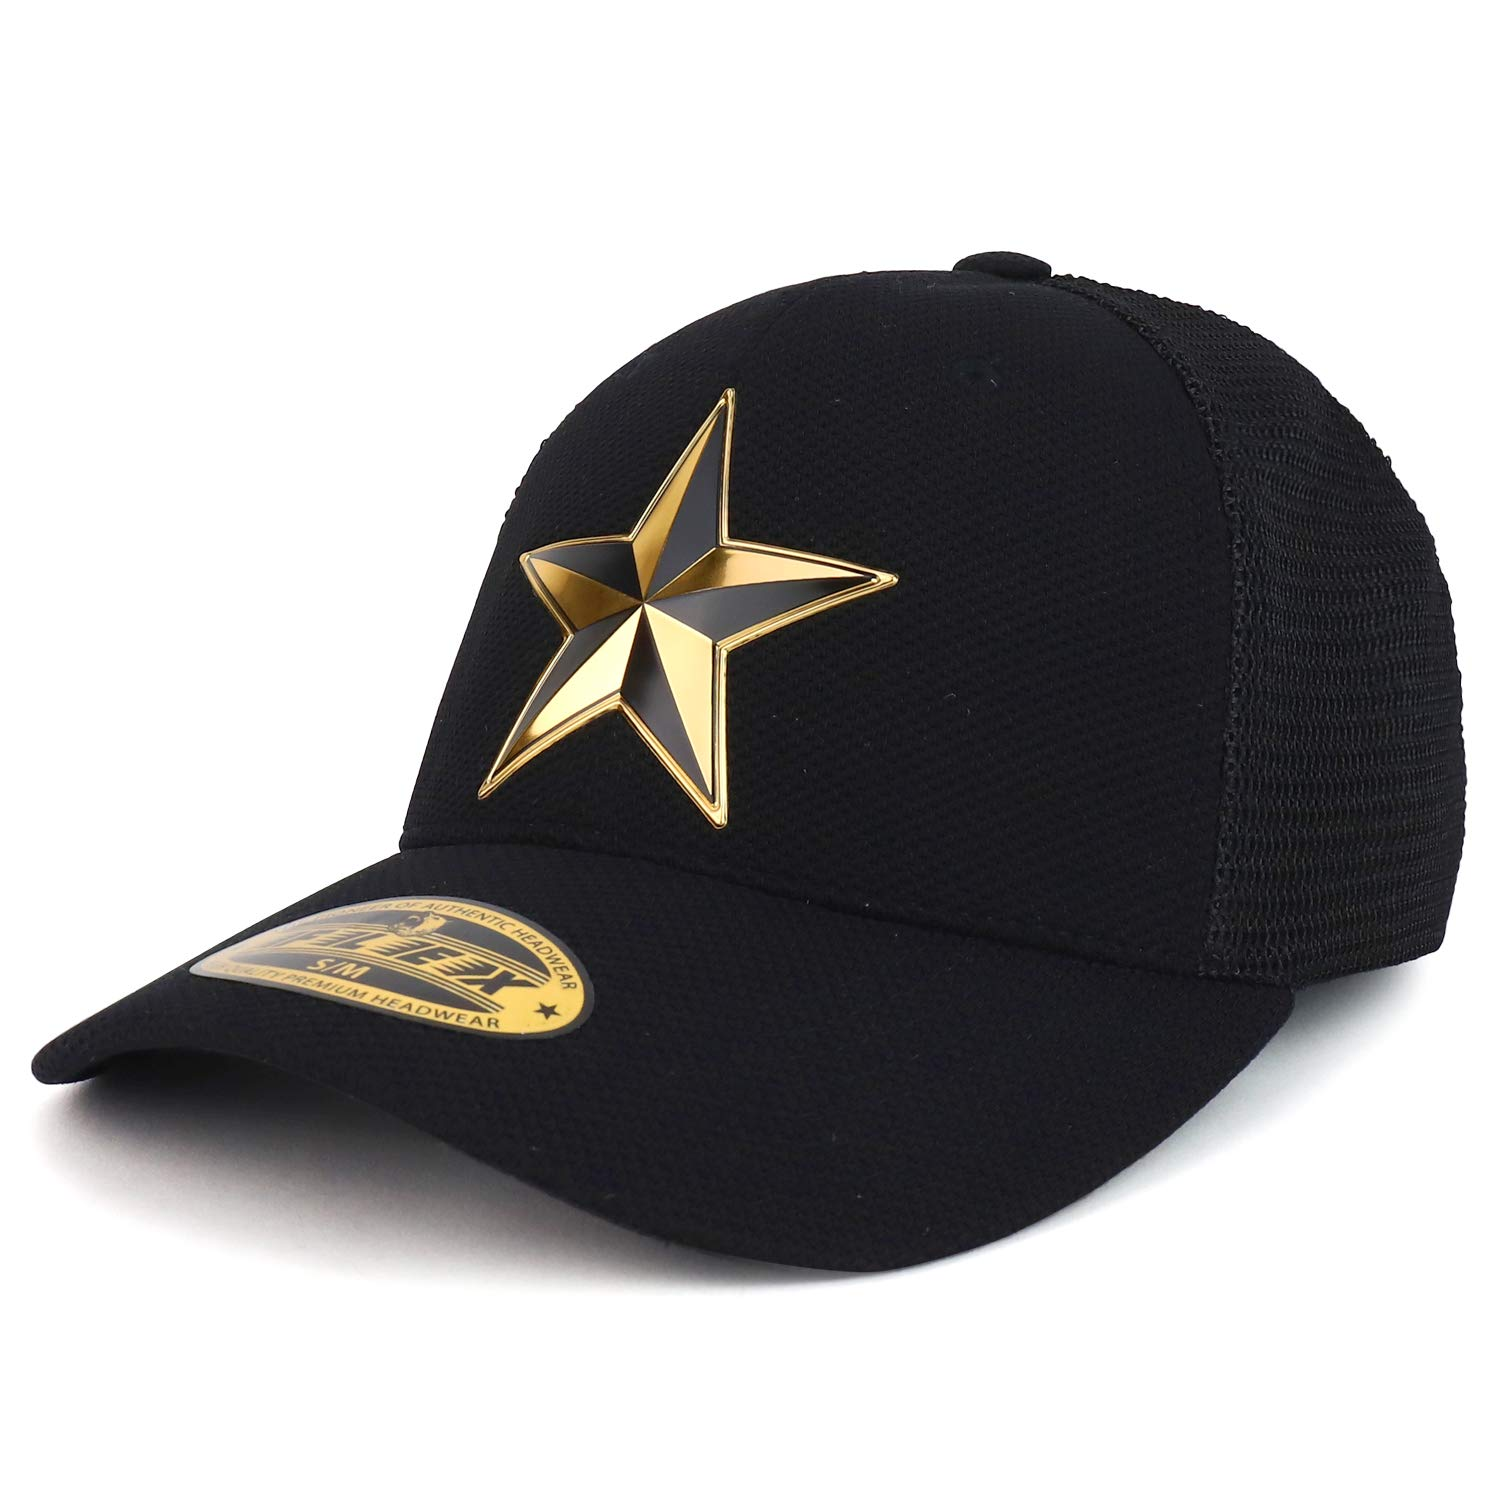 Trendy Apparel Shop High Frequency Lone Star Stretch Fitted Mesh Trucker Cap